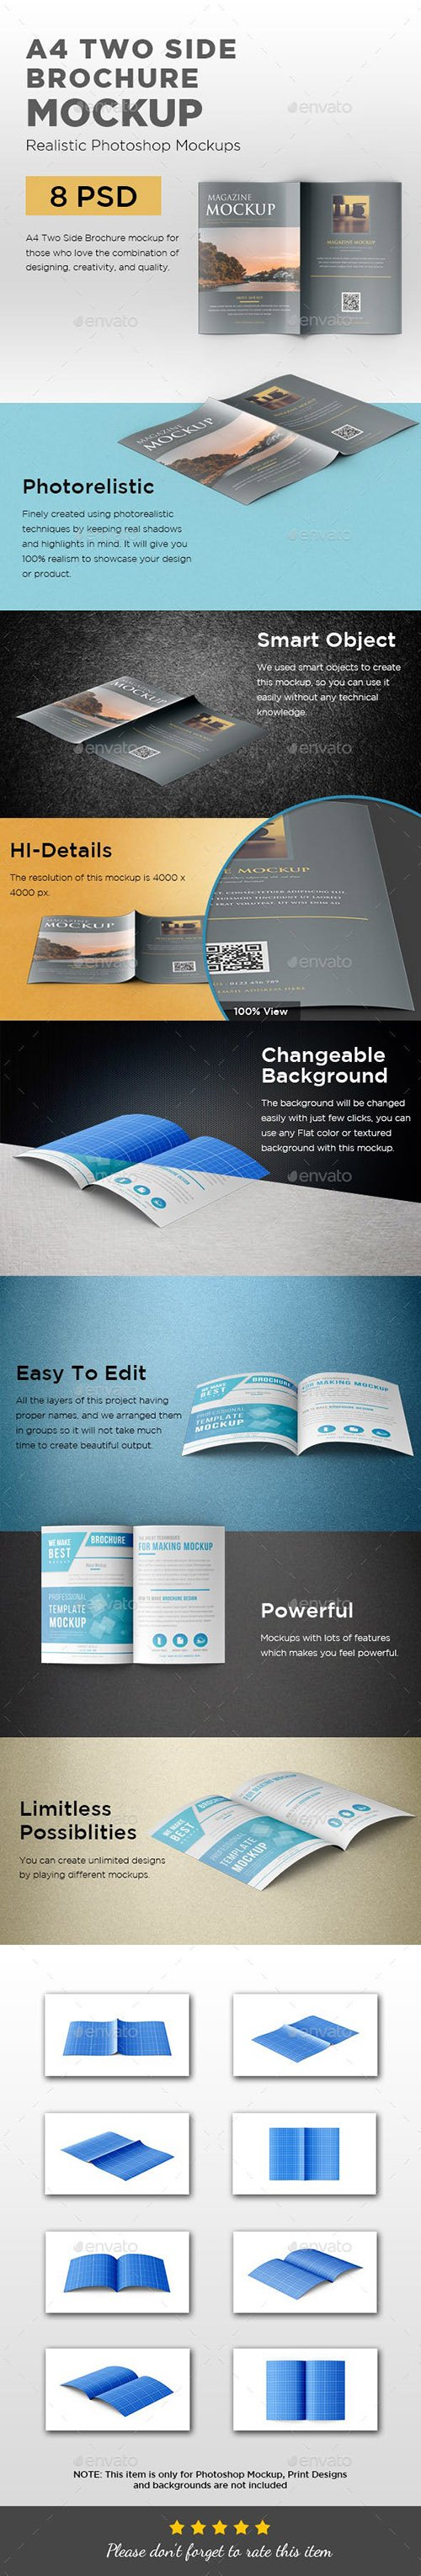 GR - A4 Two Side Folded Brochure Mockup 23272099